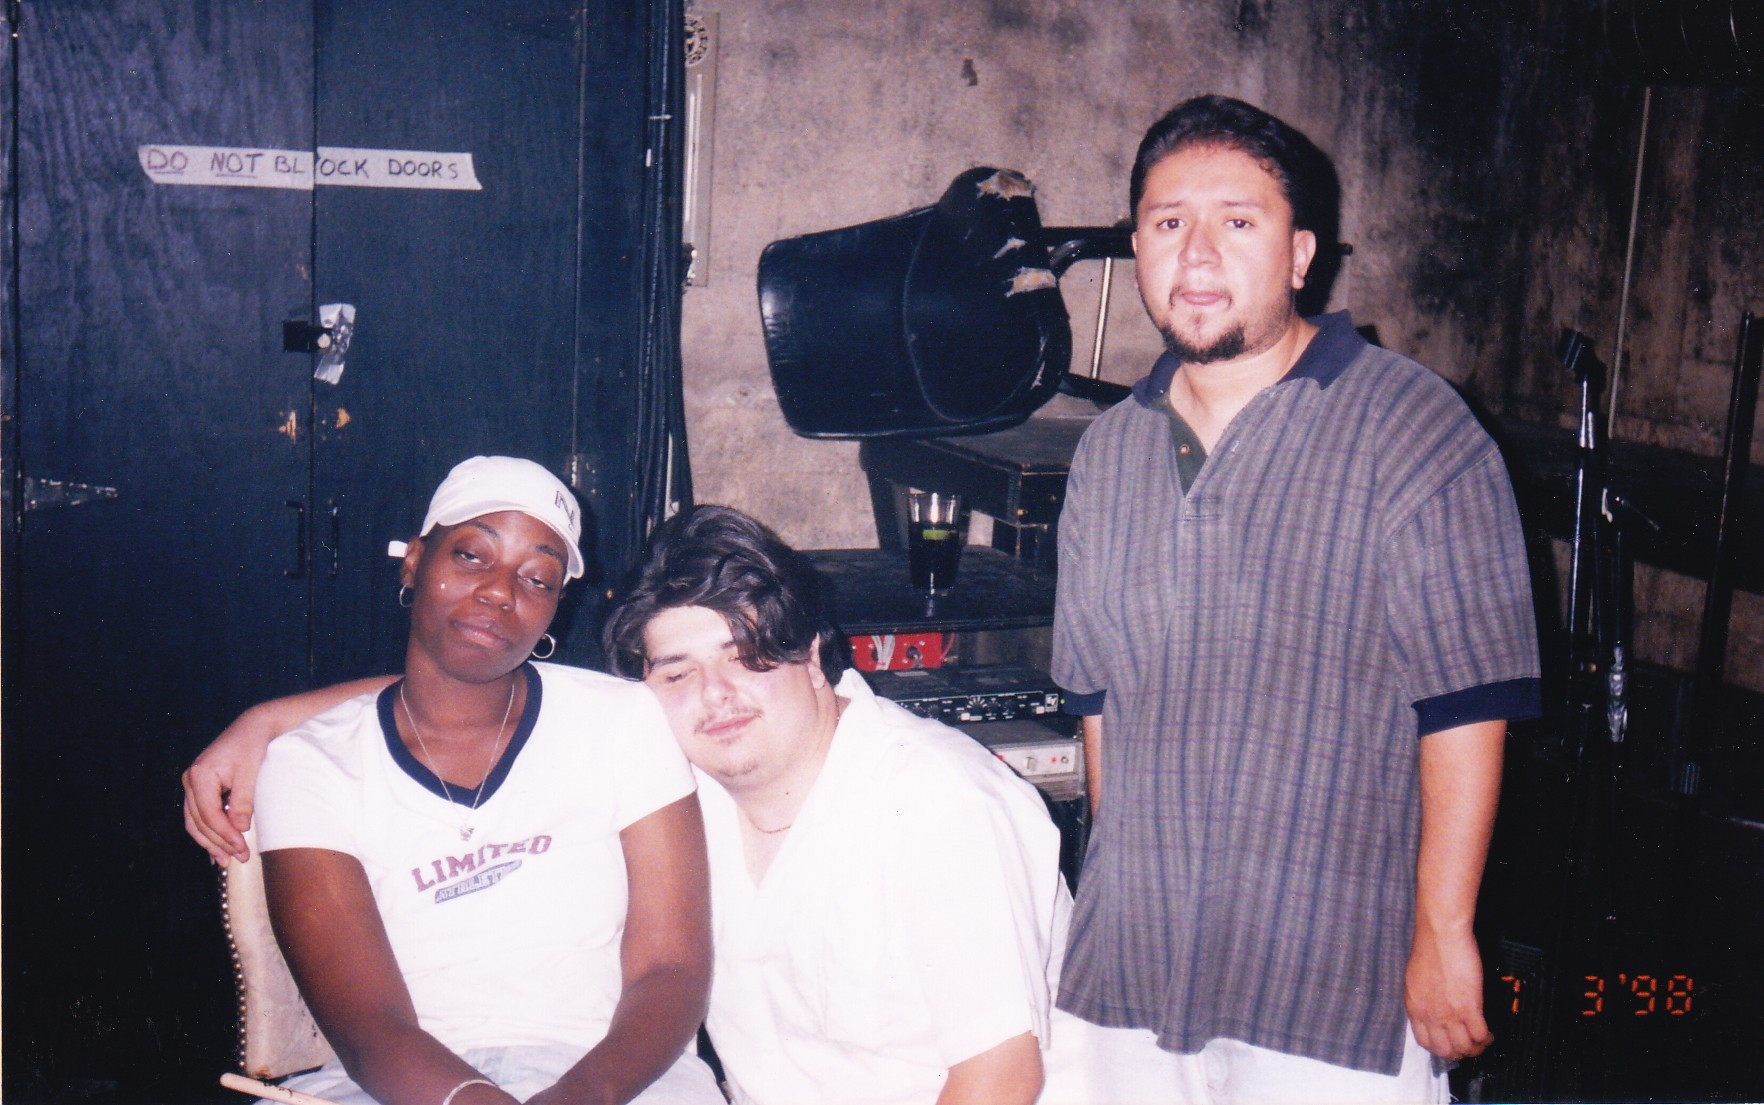 Ang13 (left) with PNS and Panik of the Molemen at Blue Groove Lounge in 1998